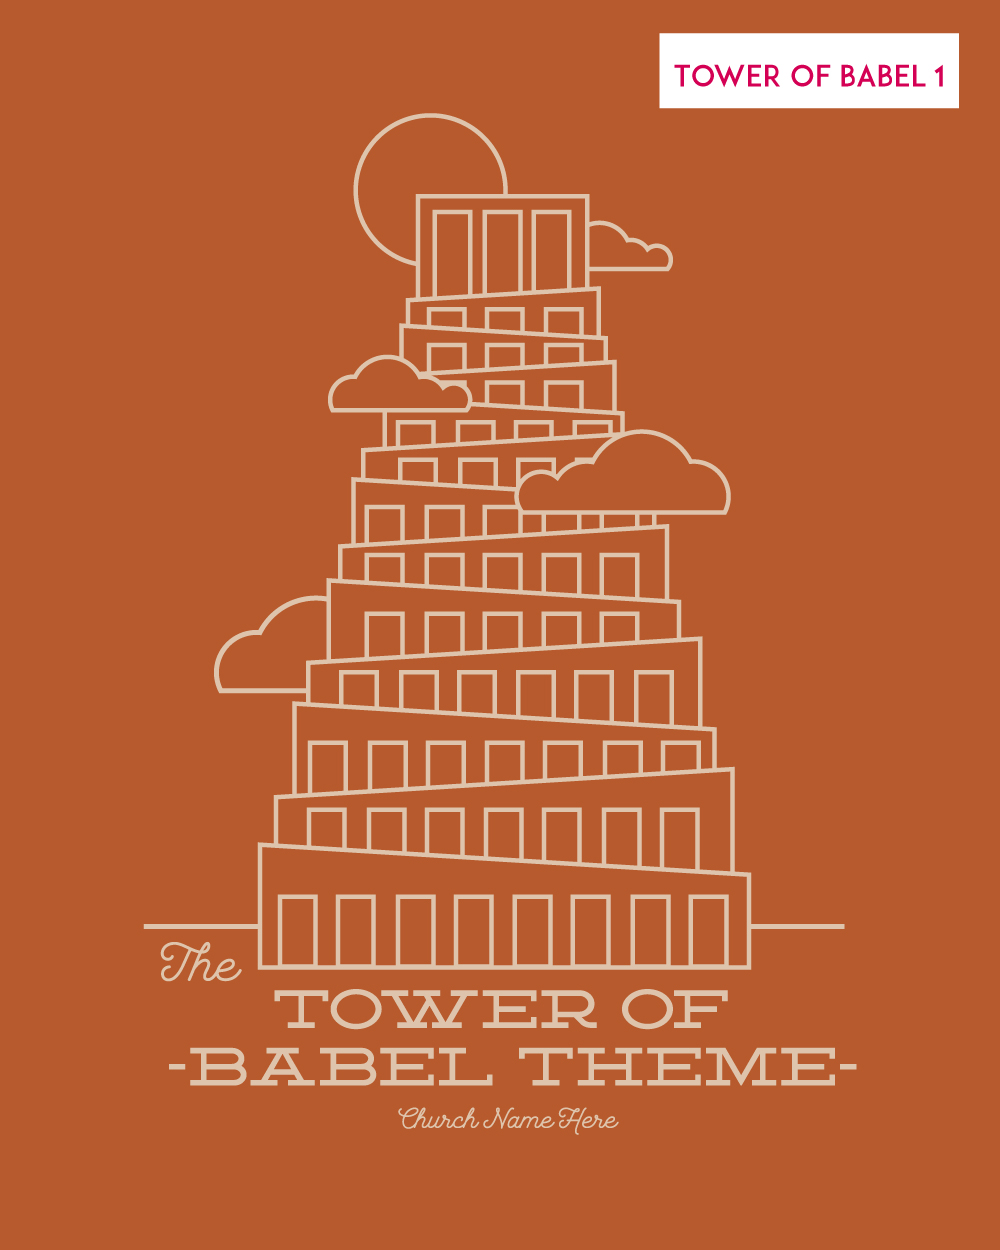 Tower of Babel 1-01.jpg